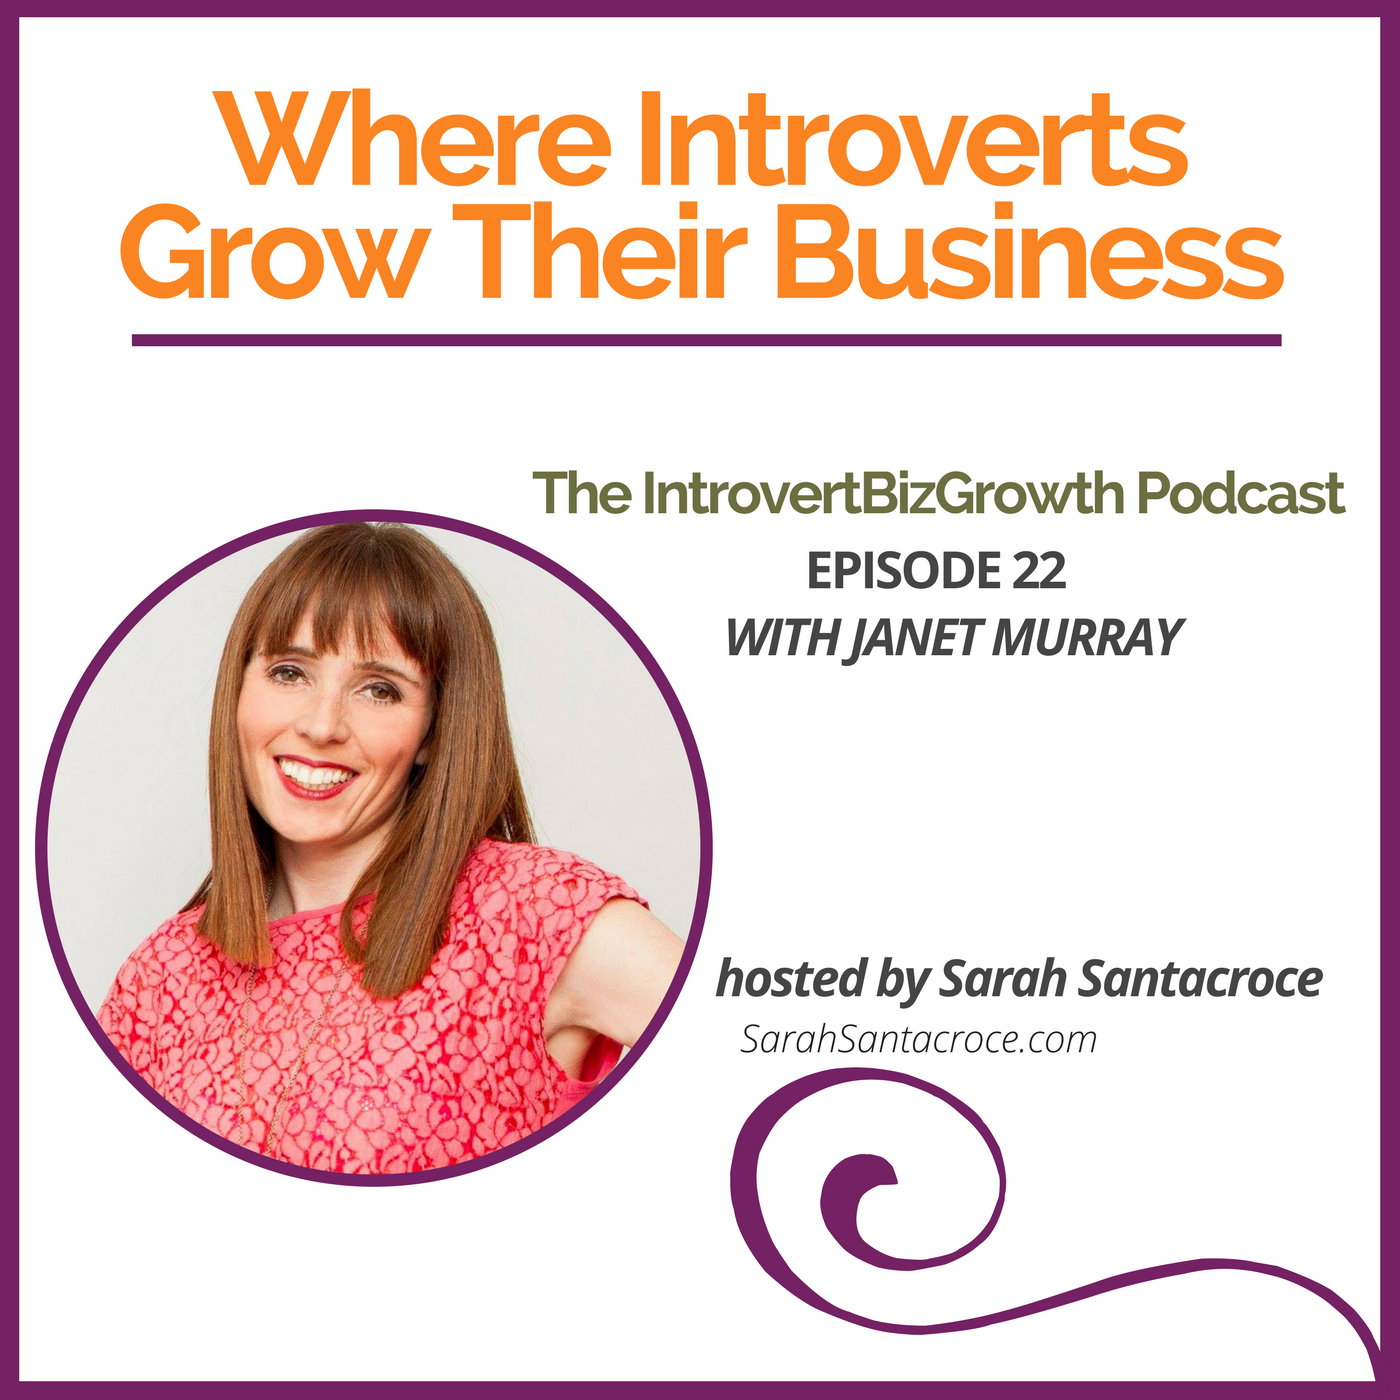 BizGrowth Podcast with Janet Murray